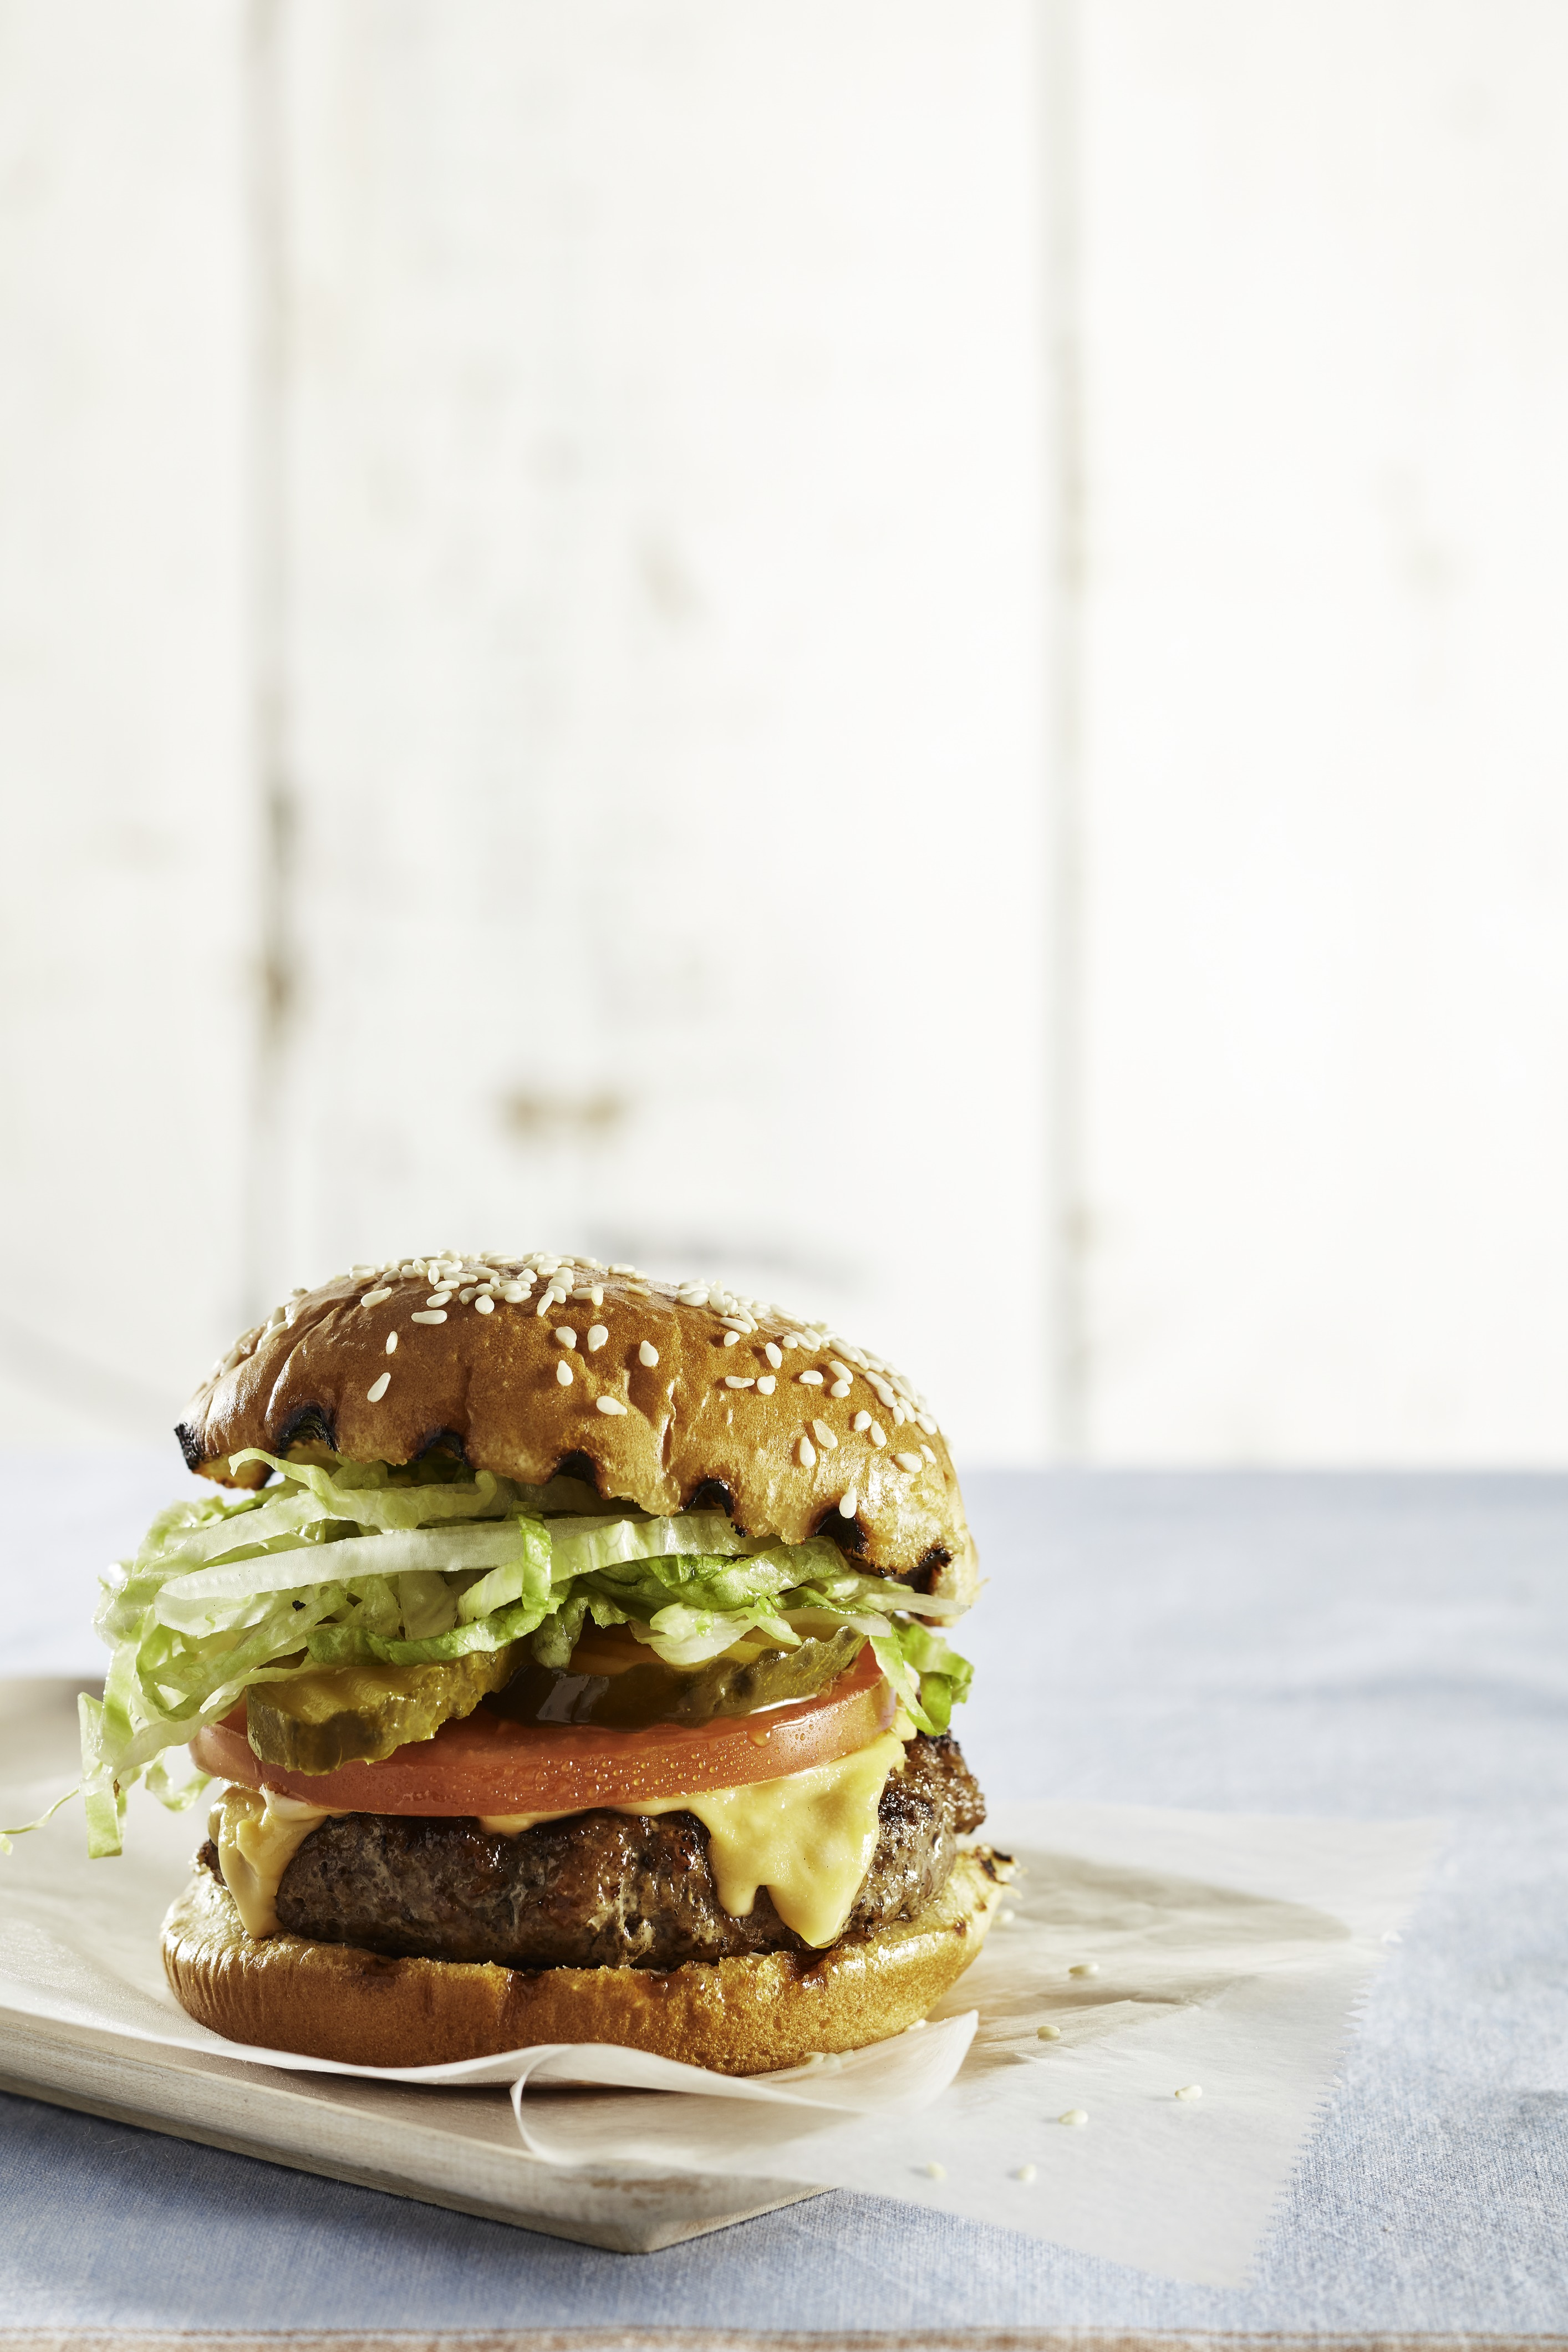 cheeseburger with grilled bun tomatoes pickles lettuce